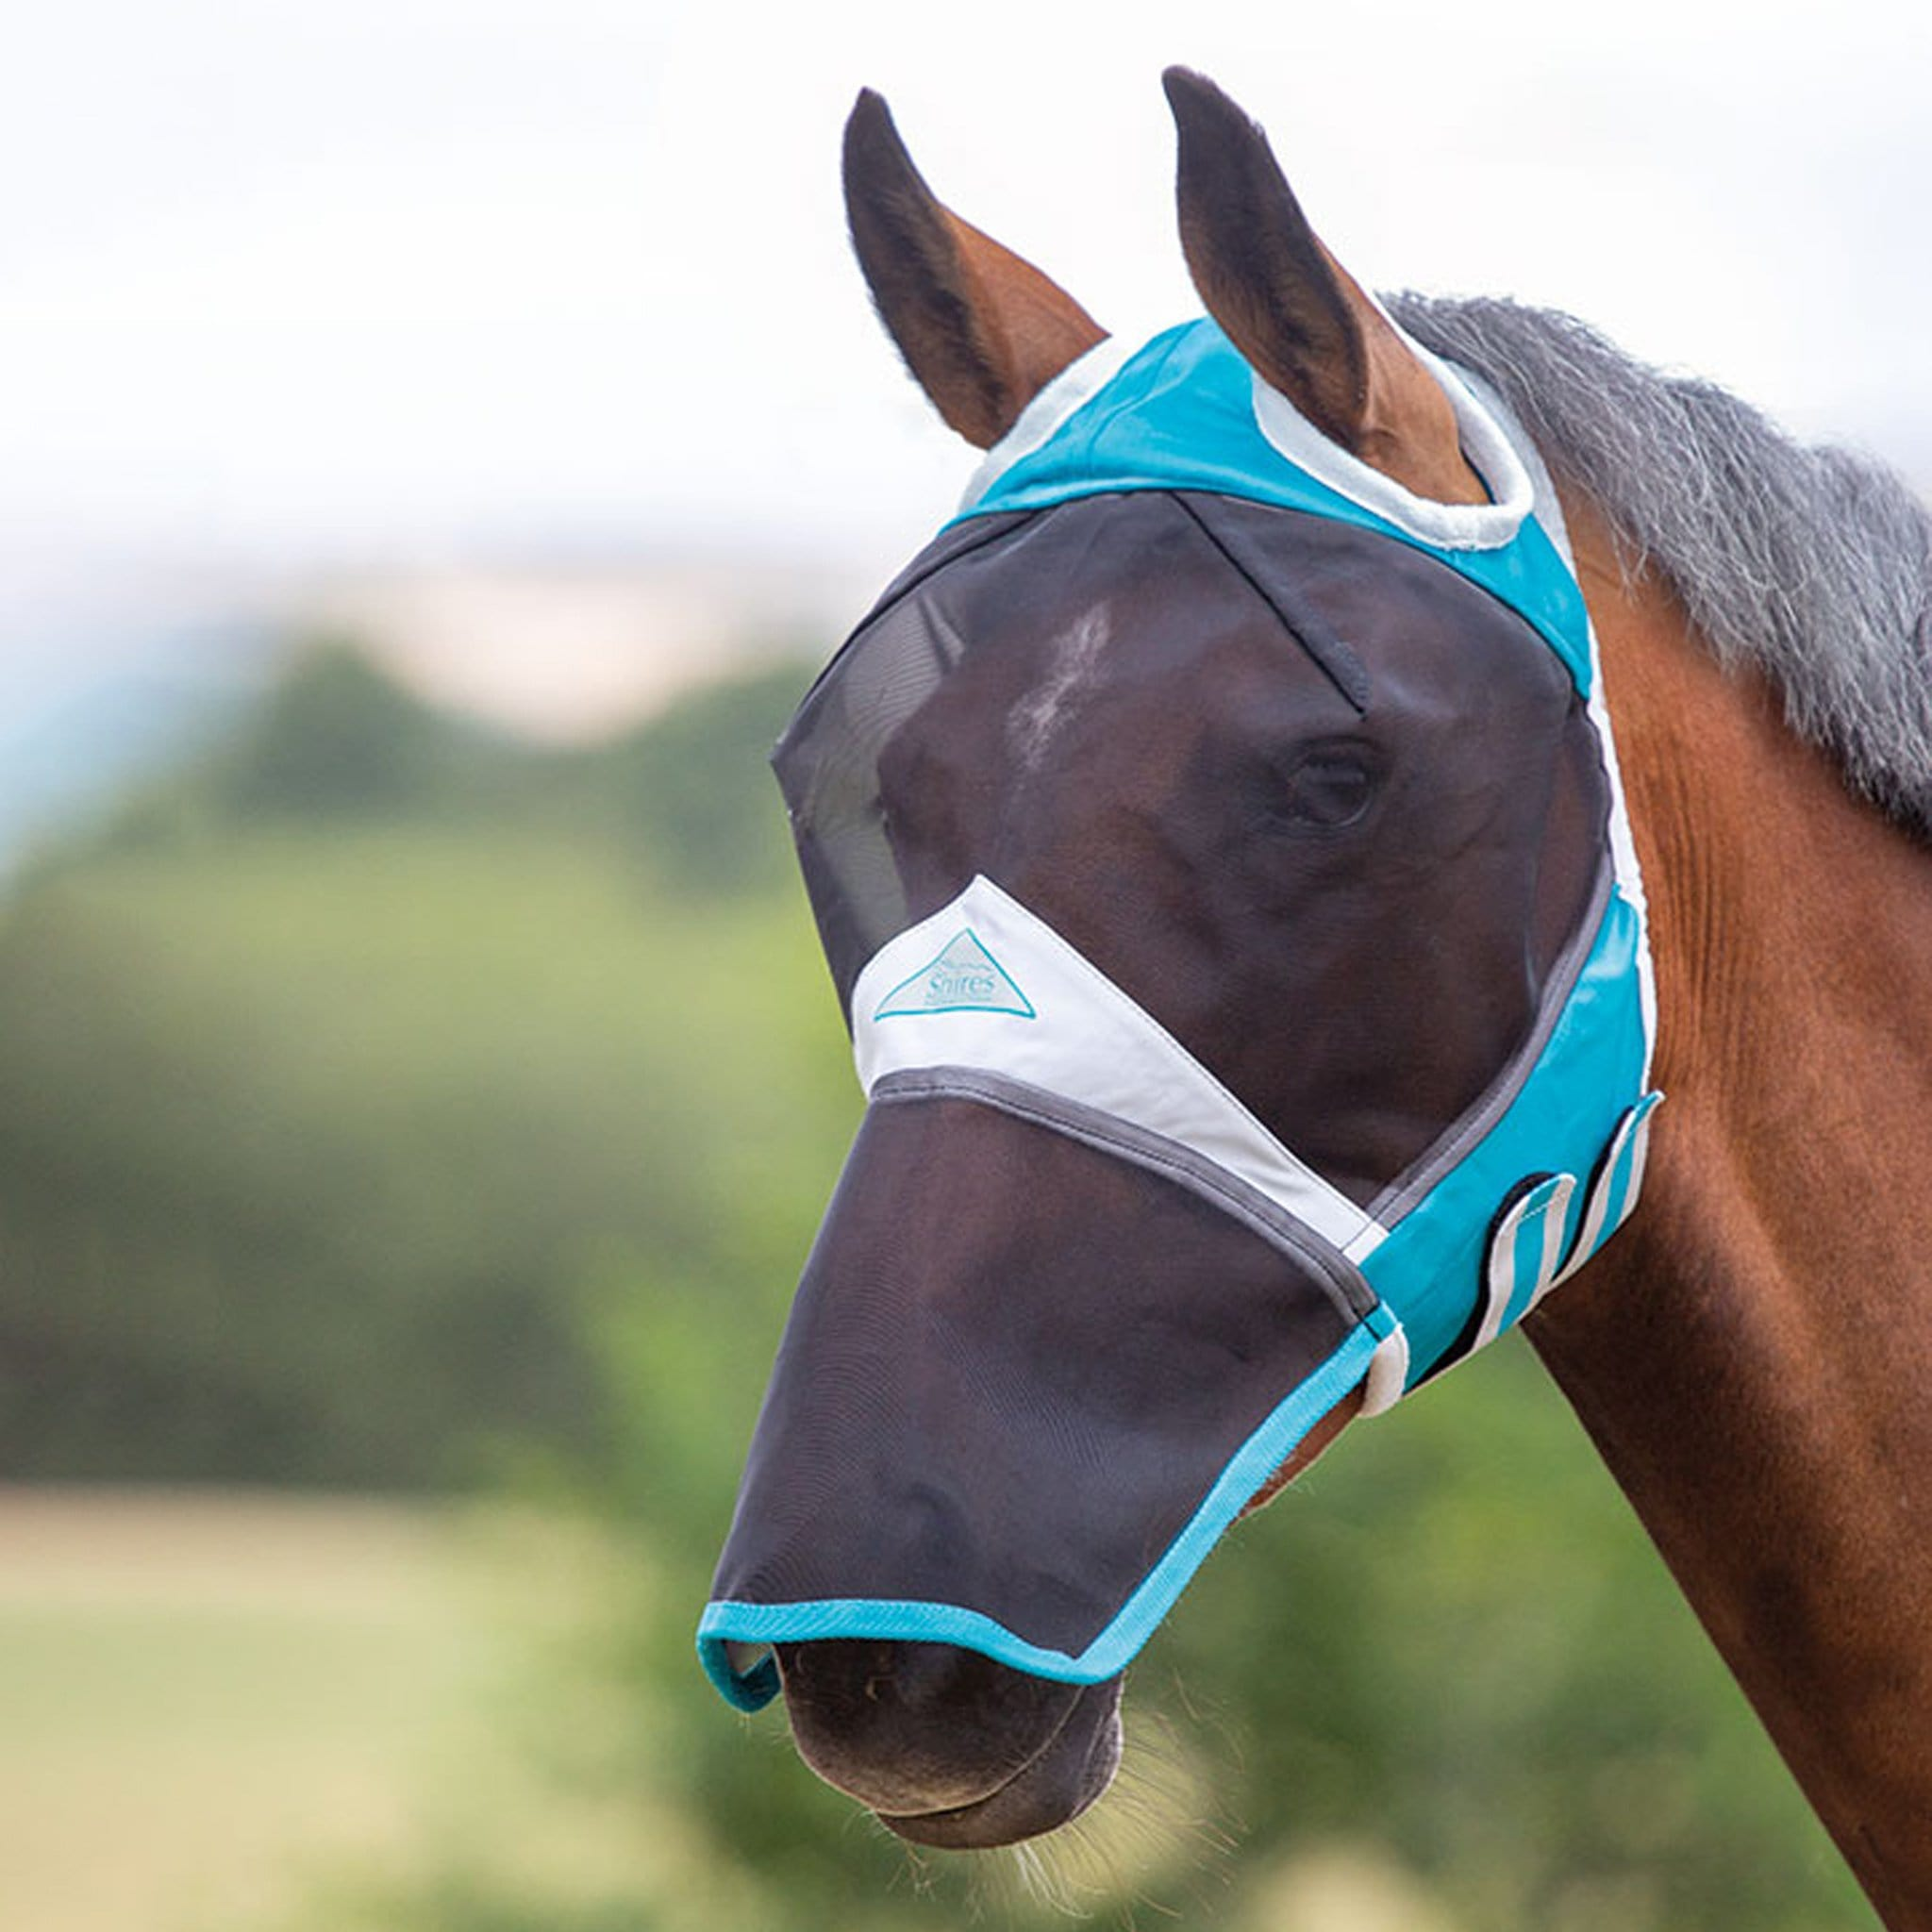 Shires Fine Mesh Fly Mask with Ear Holes and Nose Teal 6666